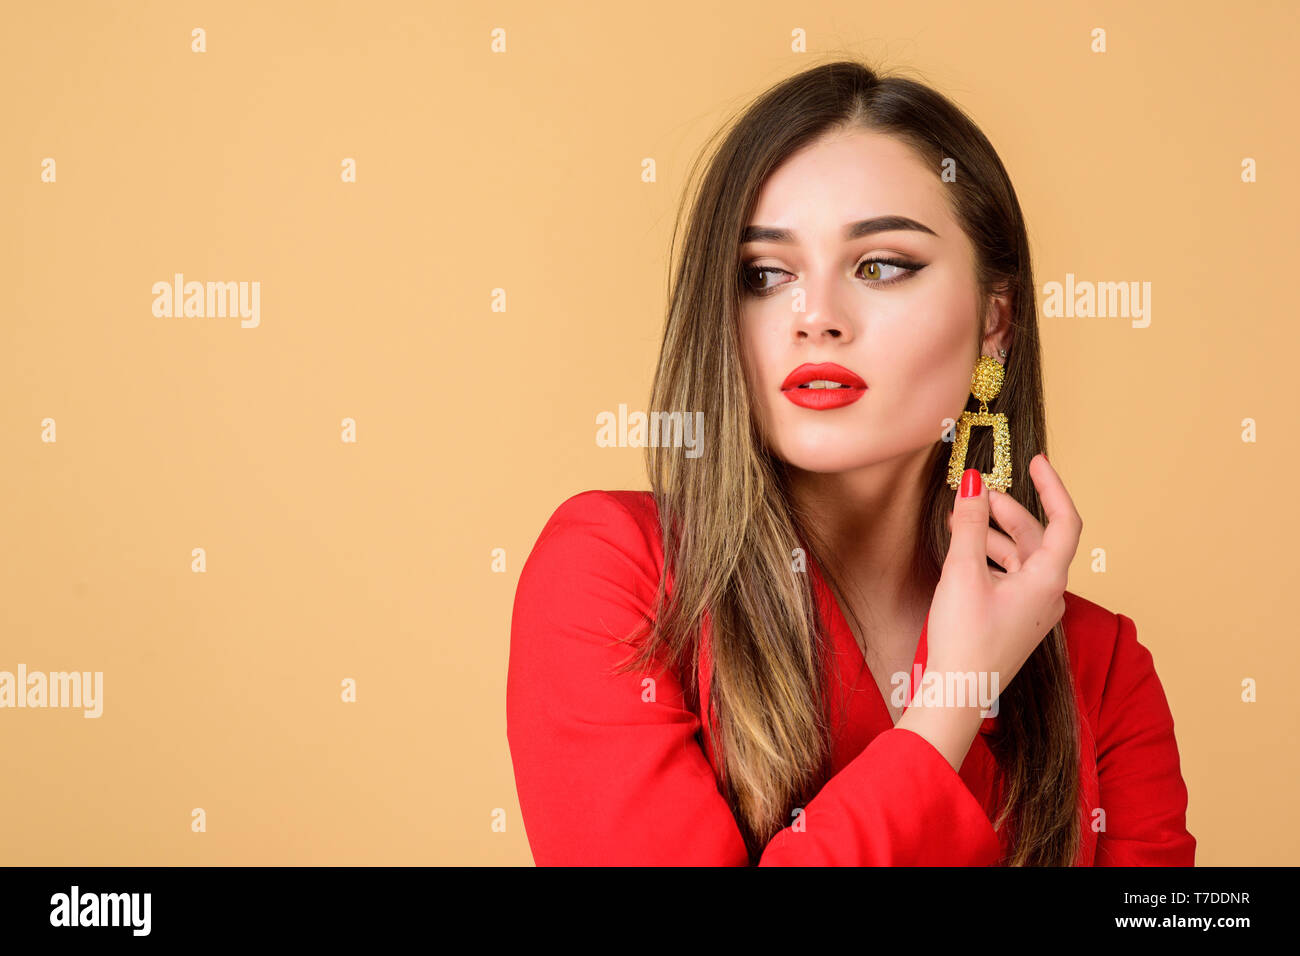 Jewelry shop. Girl model long hair demonstrating golden jewelry earrings. Expensive accessory. Fashionable jewelry. Impeccable makeup and perfect jewelry. Woman wear glamorous earrings. Fashion trend. - Stock Image